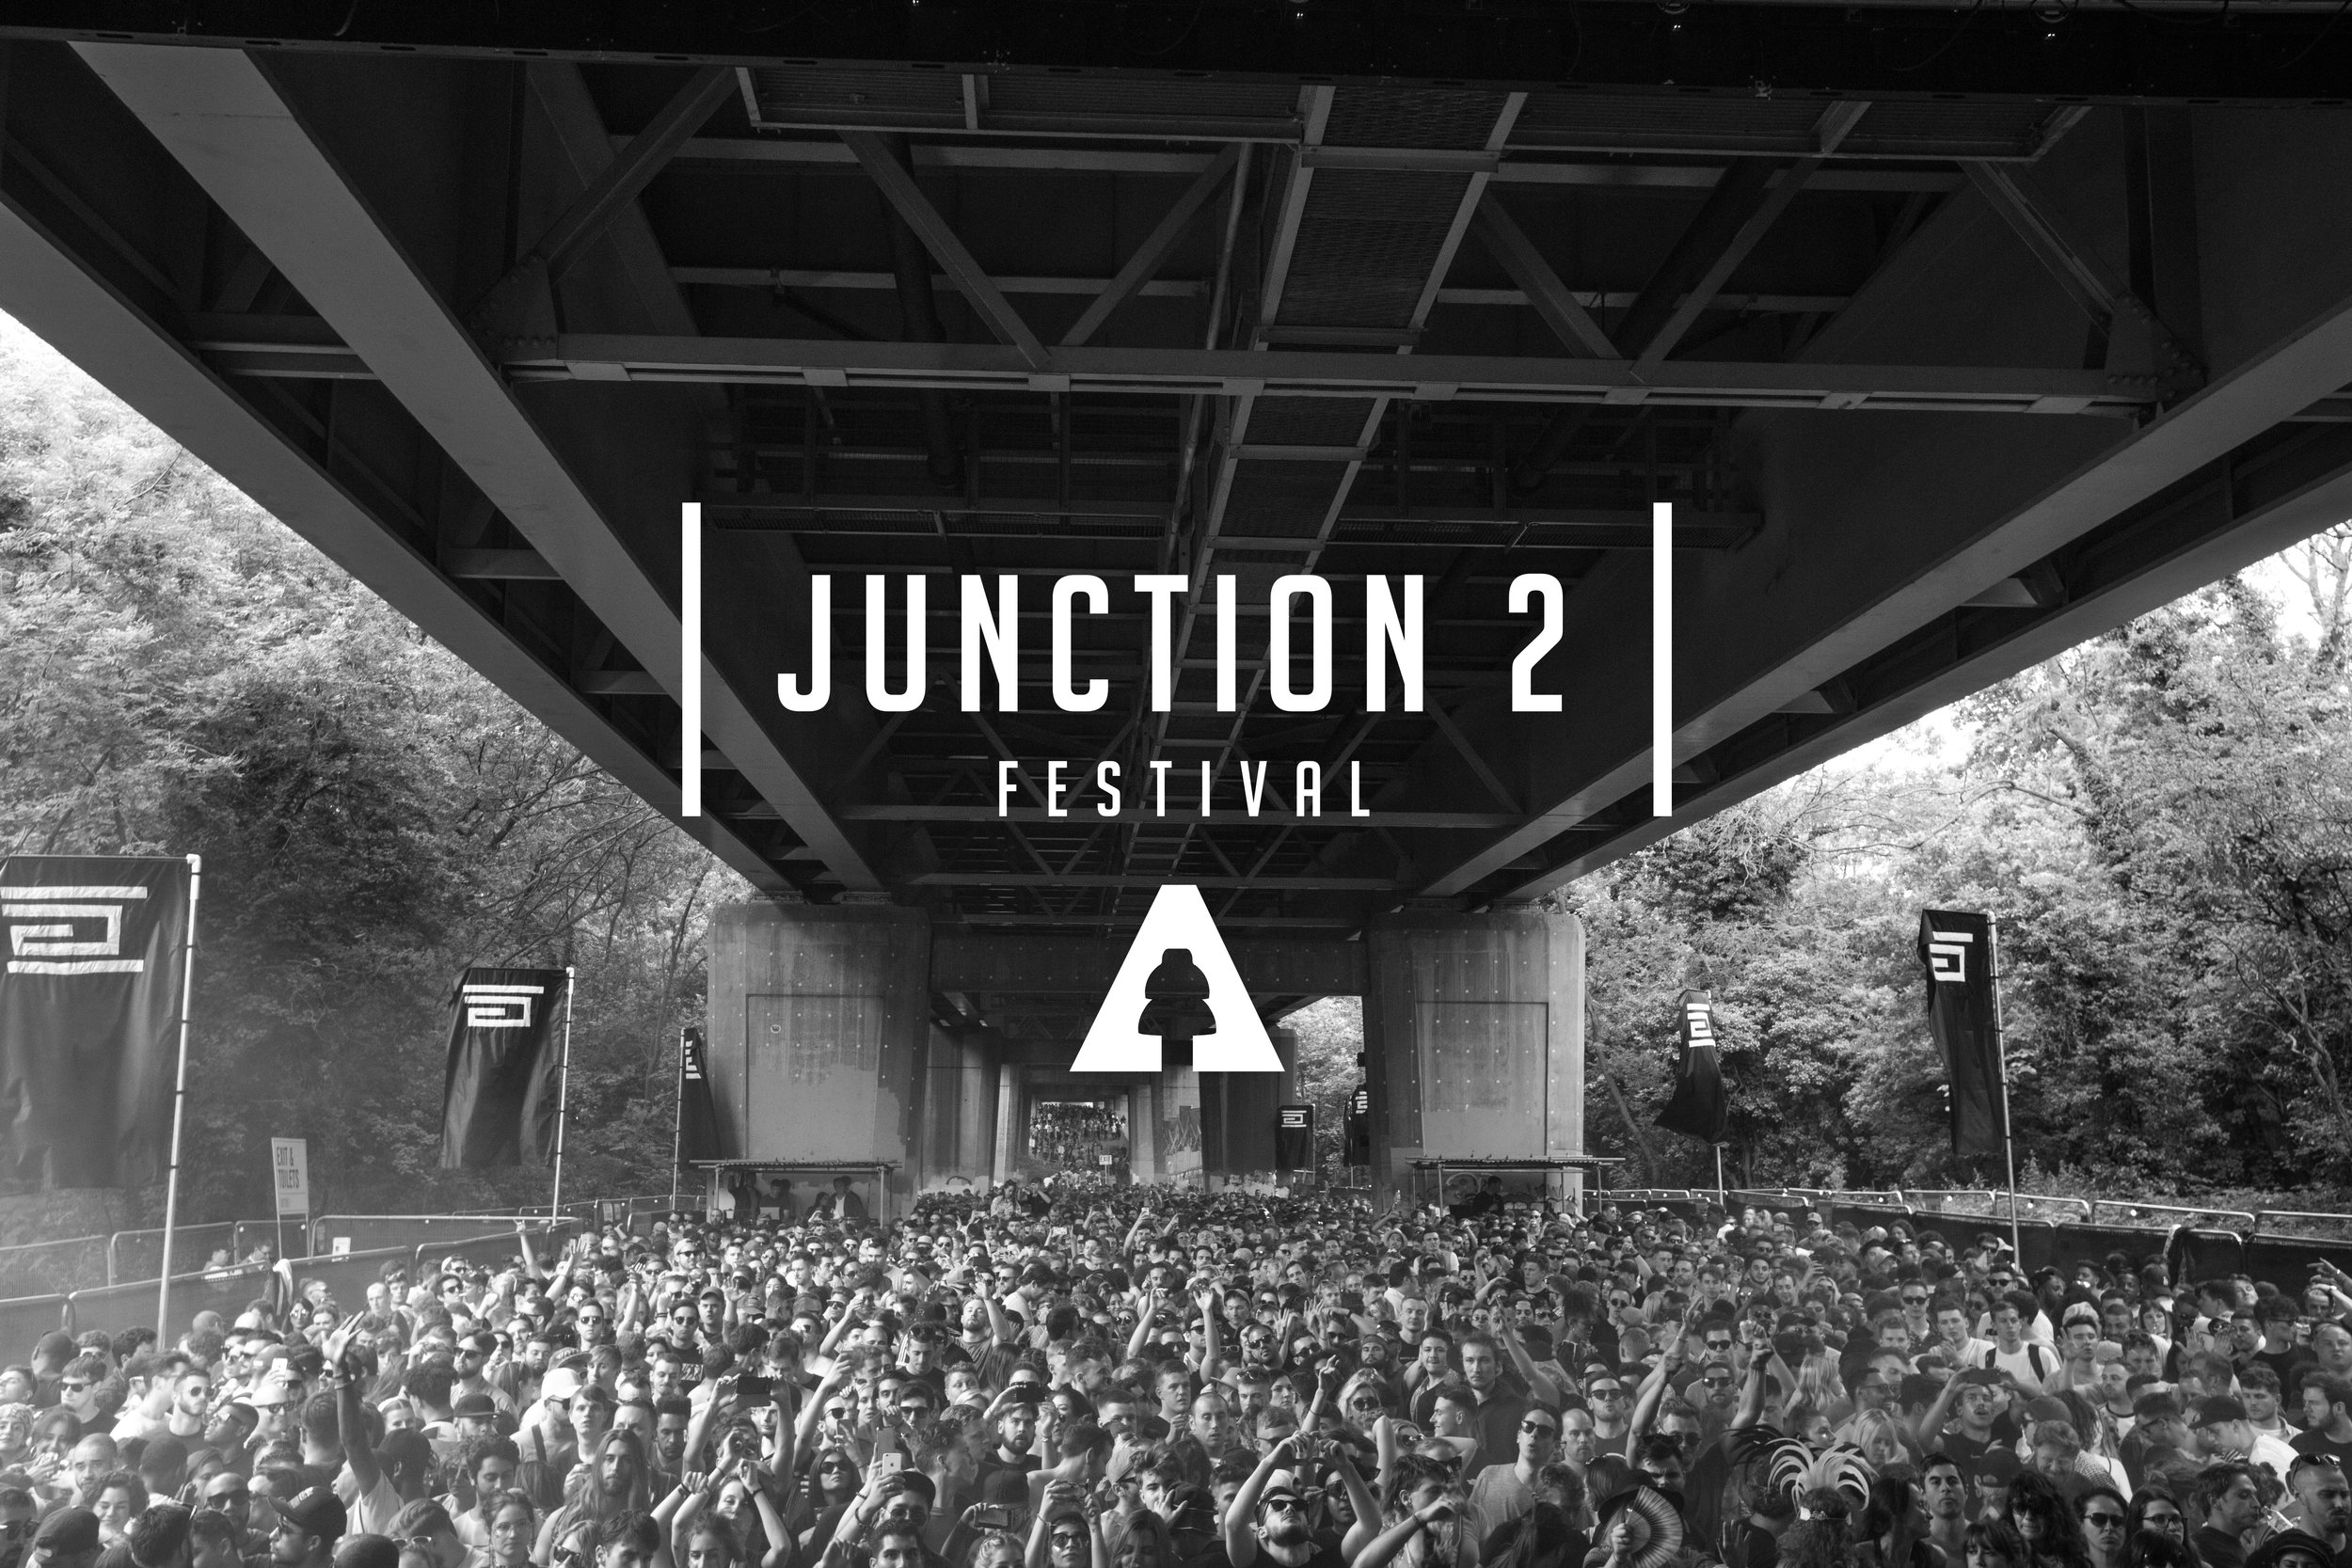 Junction-2-All-Ears.jpg